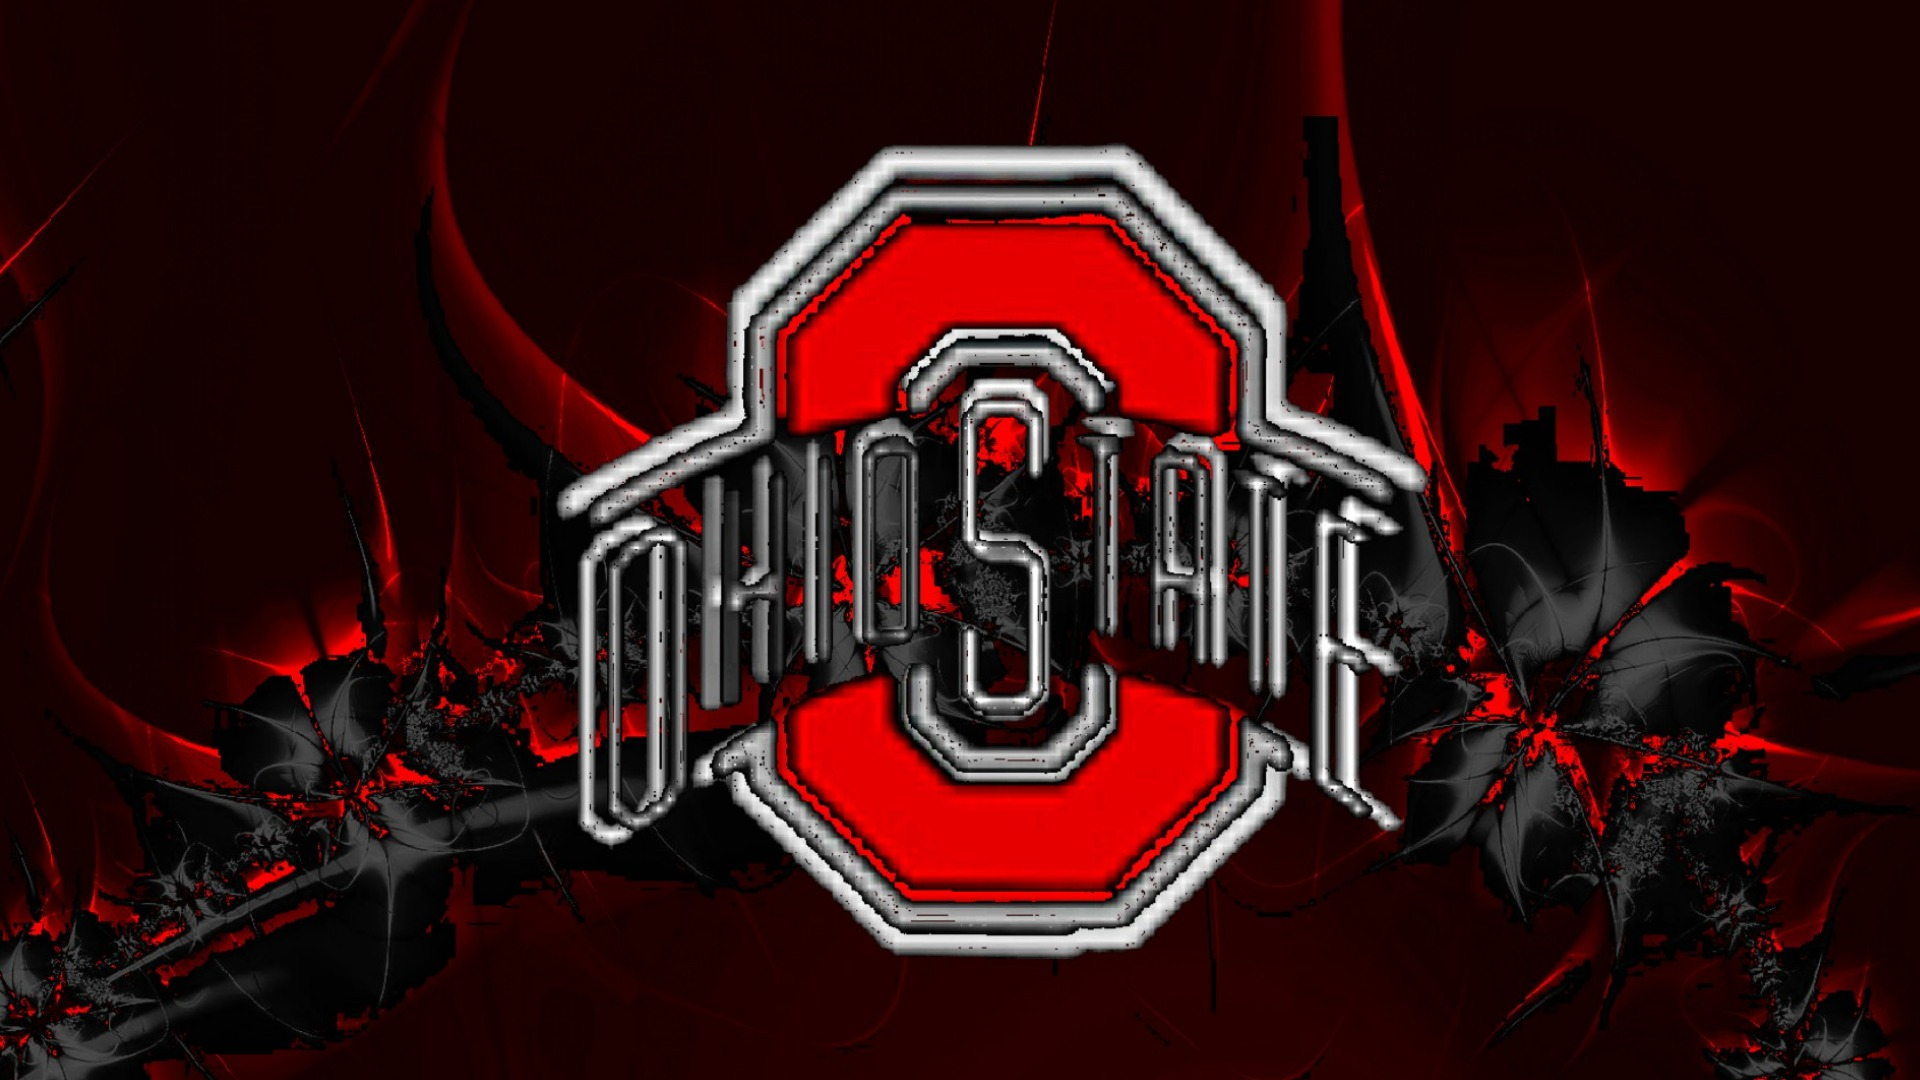 Free Ohio State Wallpaper - WallpaperSafari